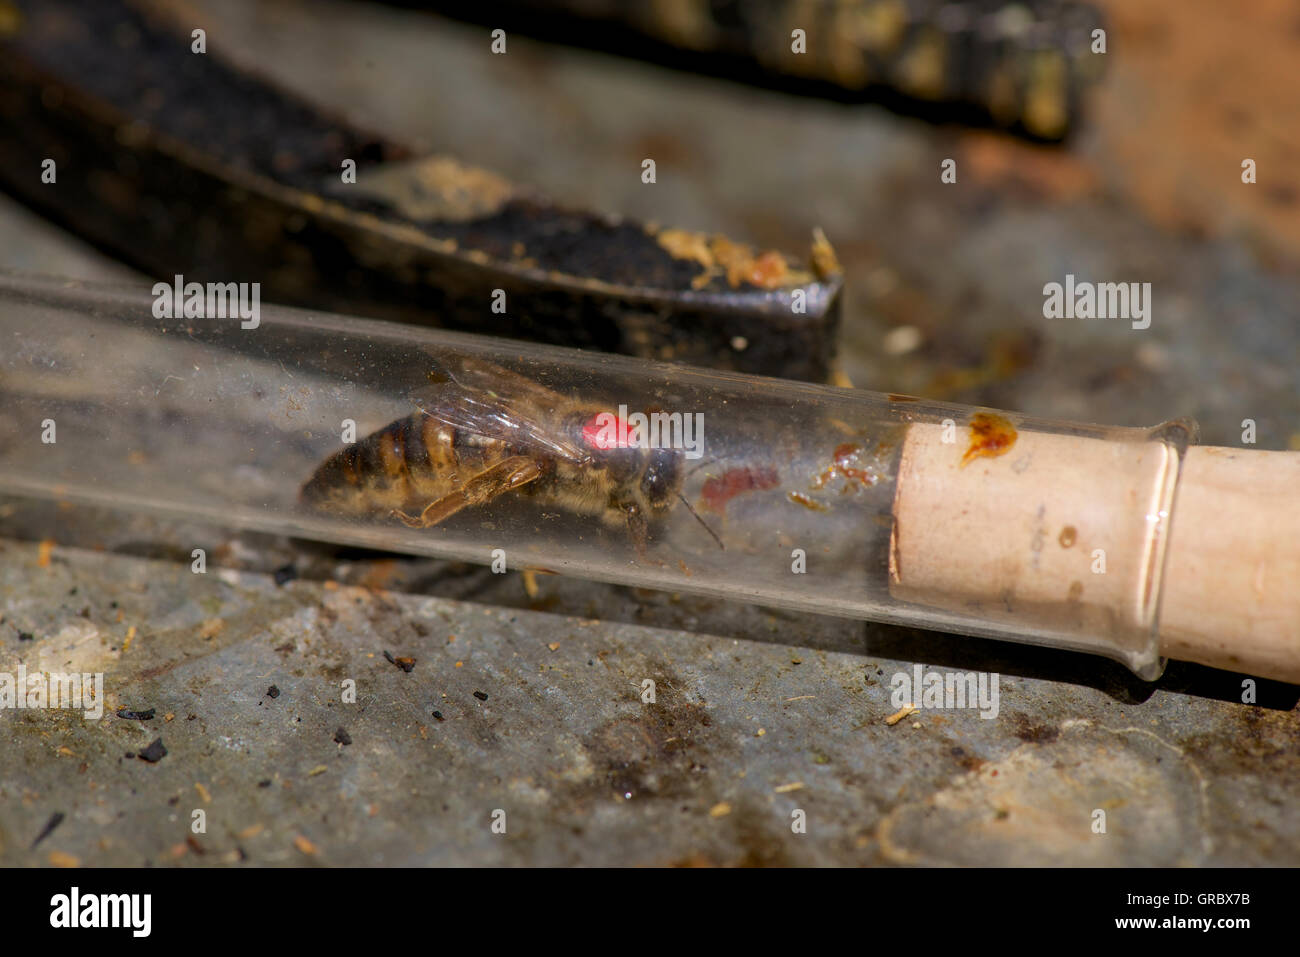 Red Marked Queen Bee In A Glass Tube - Stock Image